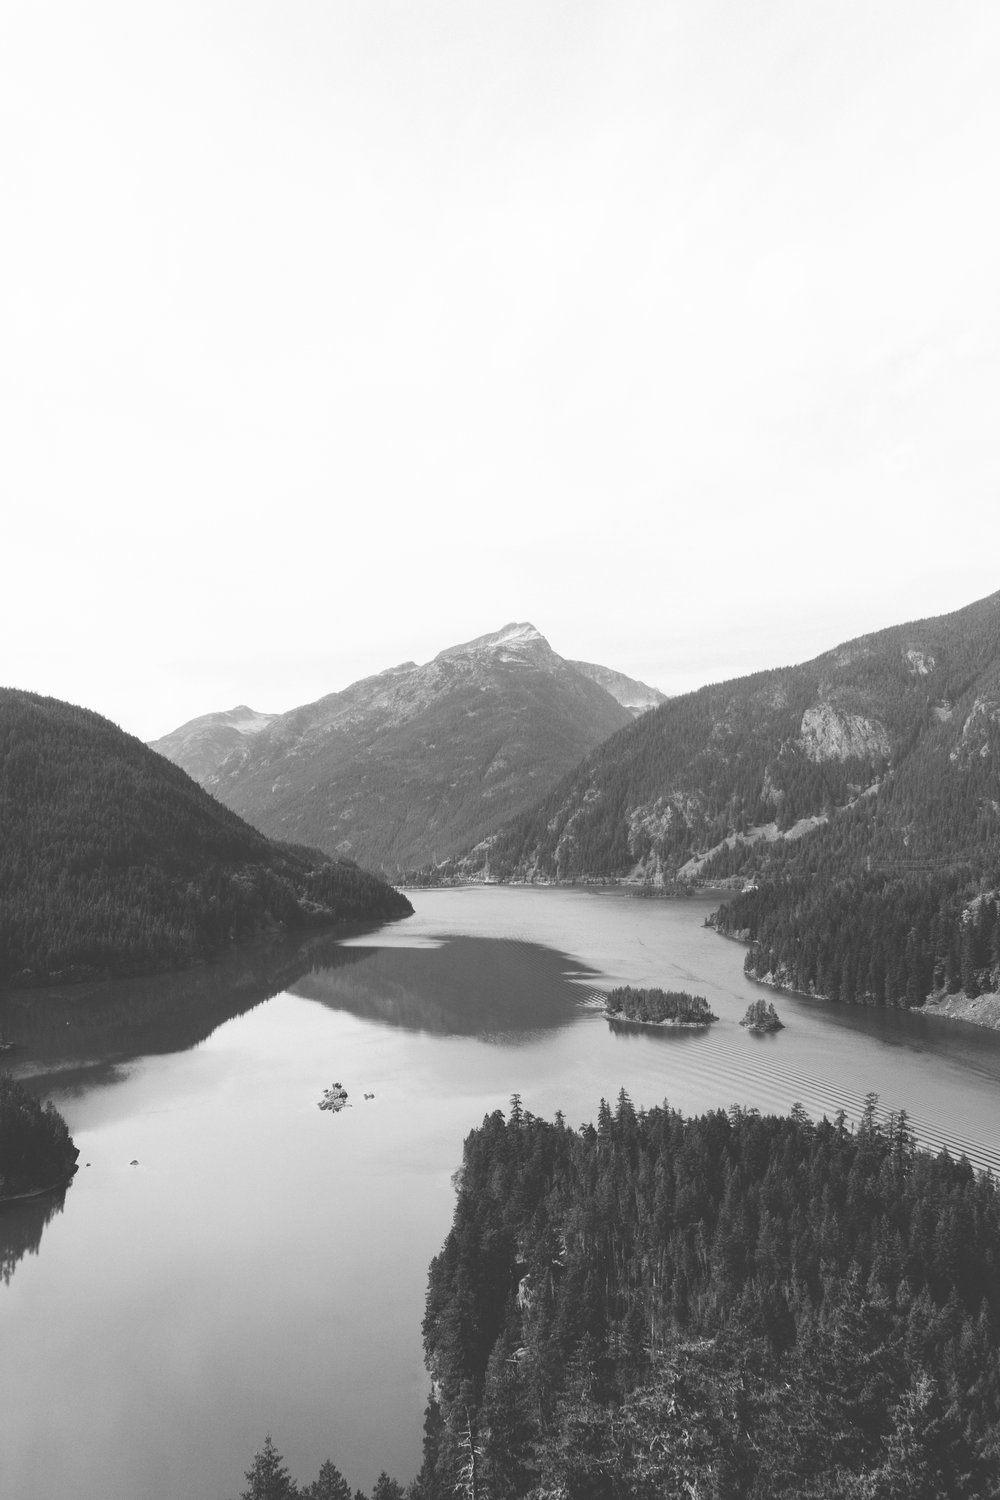 diablo lake overlook - b+w